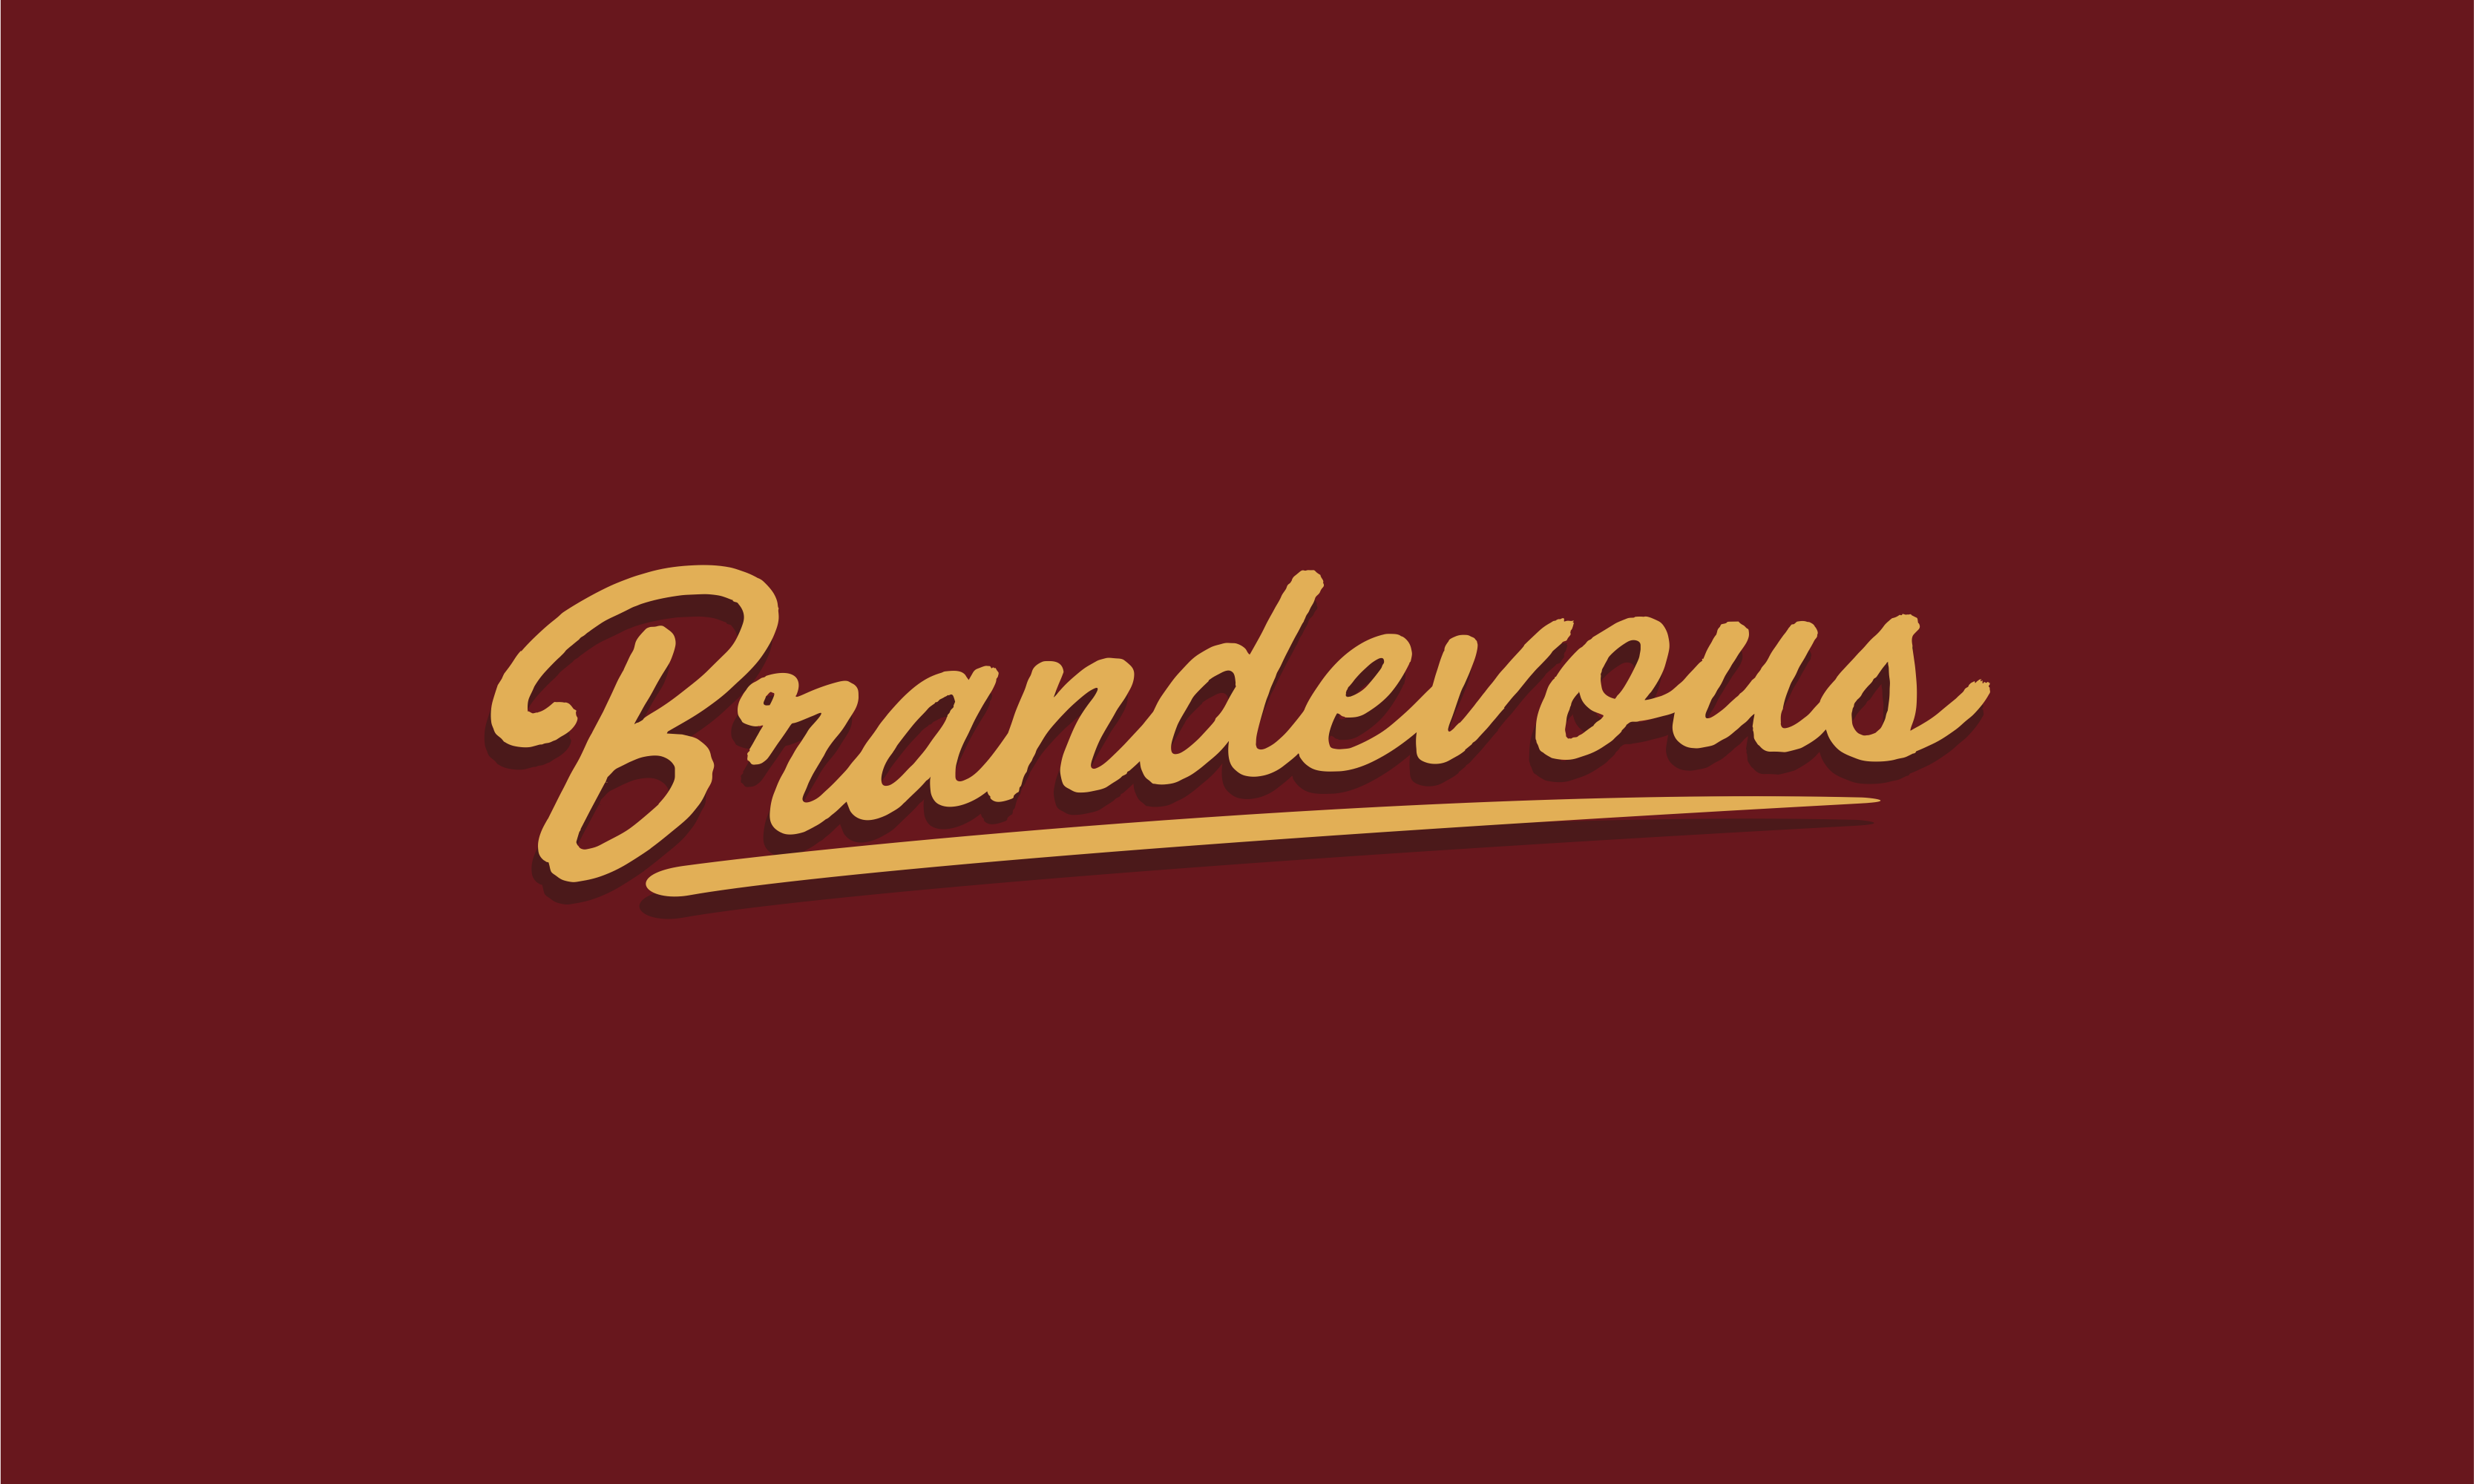 Brandevous - Marketing business name for sale